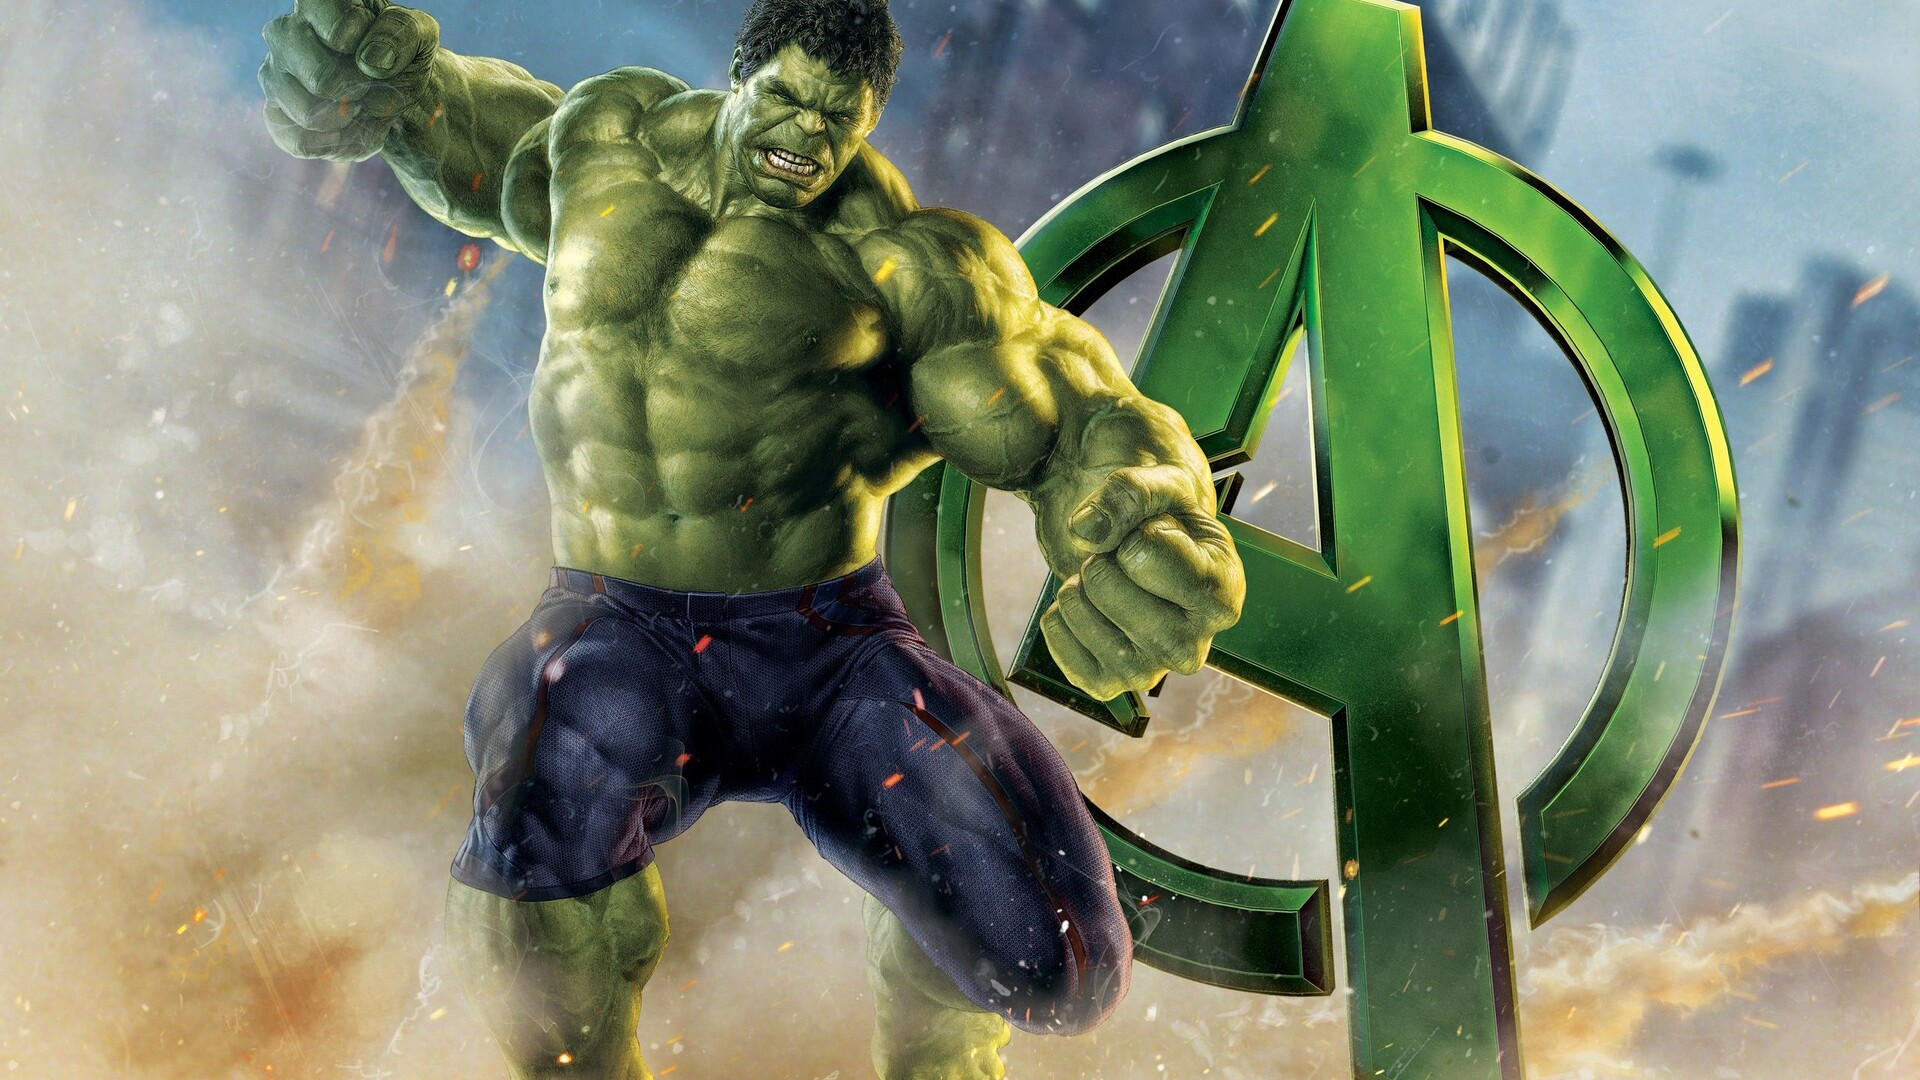 1920x1080 Avengers Hulk Laptop Full Hd 1080p Hd 4k Wallpapers